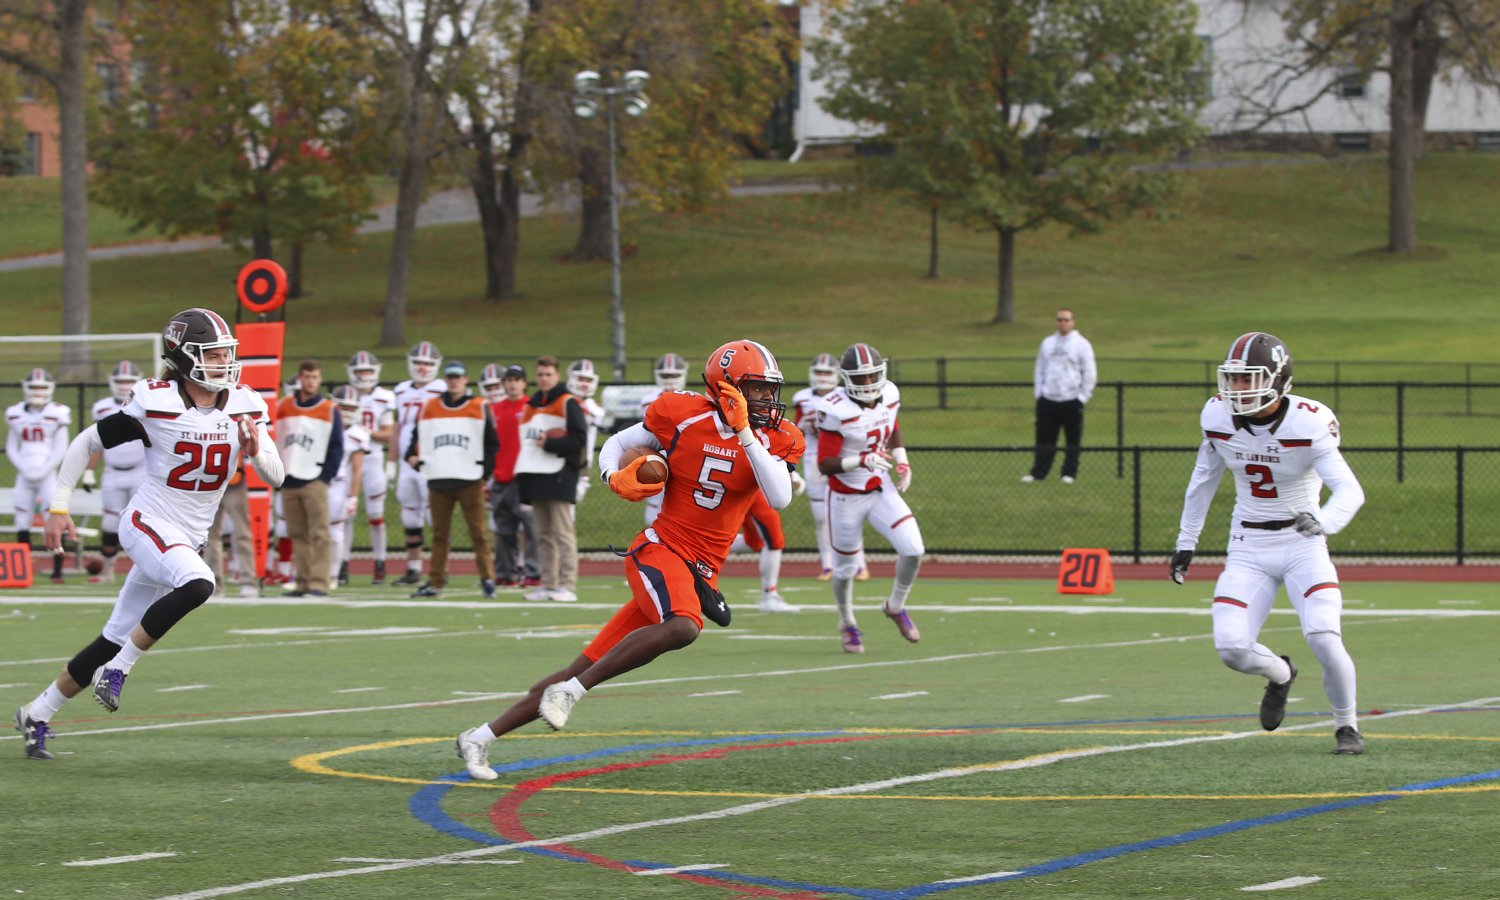 Brandon Shed '18 runs downfield during Hobart's 34-7 win over St. Lawrence University. Shed caught three passes for a game-high 121 yards, breaking the Hobart career record for receiving yards.